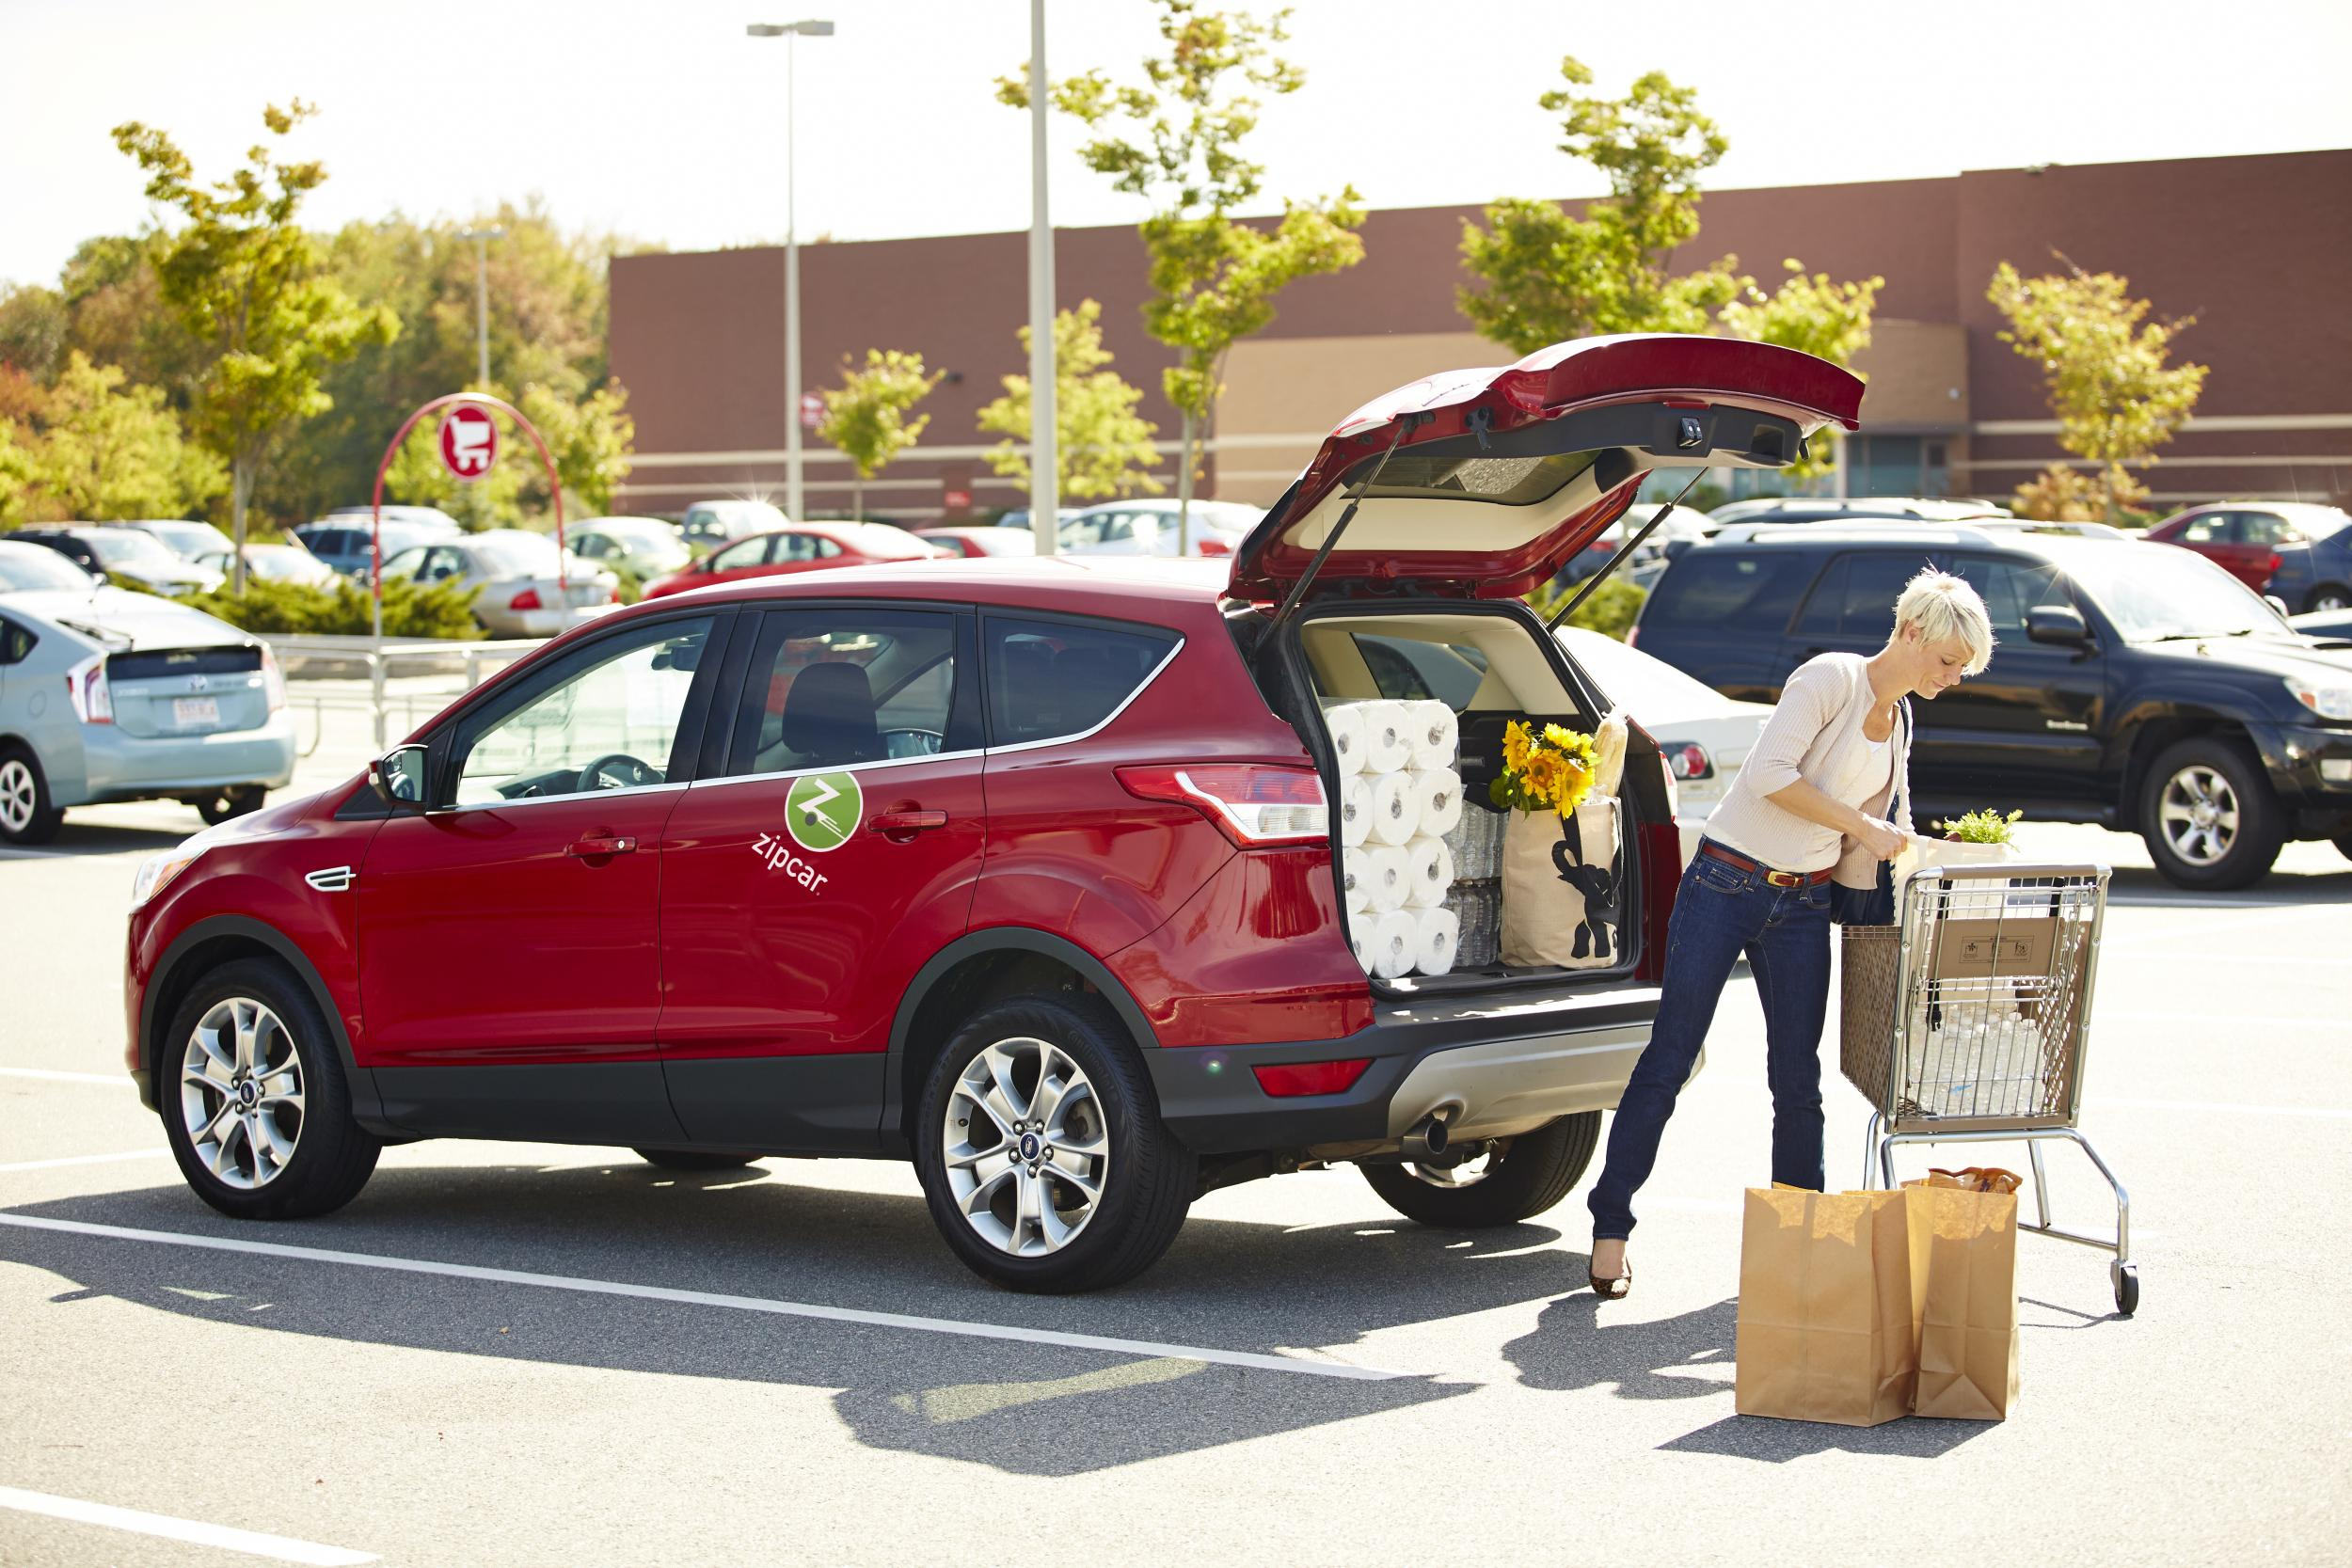 Zipcar Car Sharing Taxes Highest In Chicago Among Cities